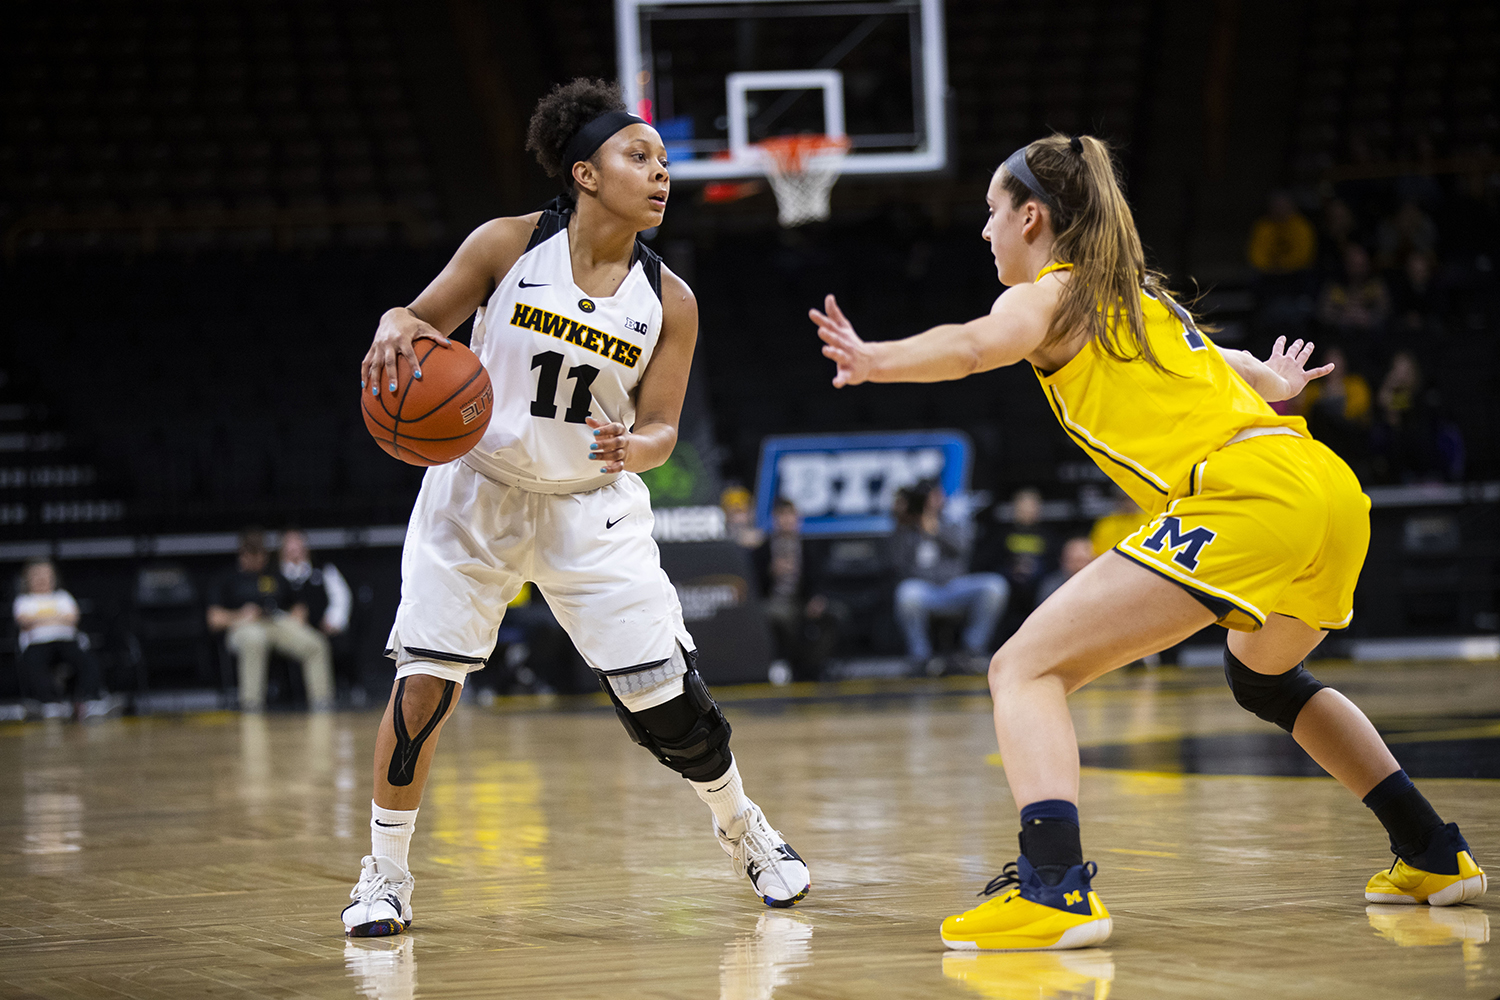 Iowa+guard+Tania+Davis+attempts+to+pass+the+ball+during+the+Iowa%2FMichigan+women%27s+basketball+game+at+Carver-Hawkeye+Arena+on+Thursday%2C+January+17%2C+2019.++The+Hawkeyes+defeated+the+Wolverines%2C+75-61.+